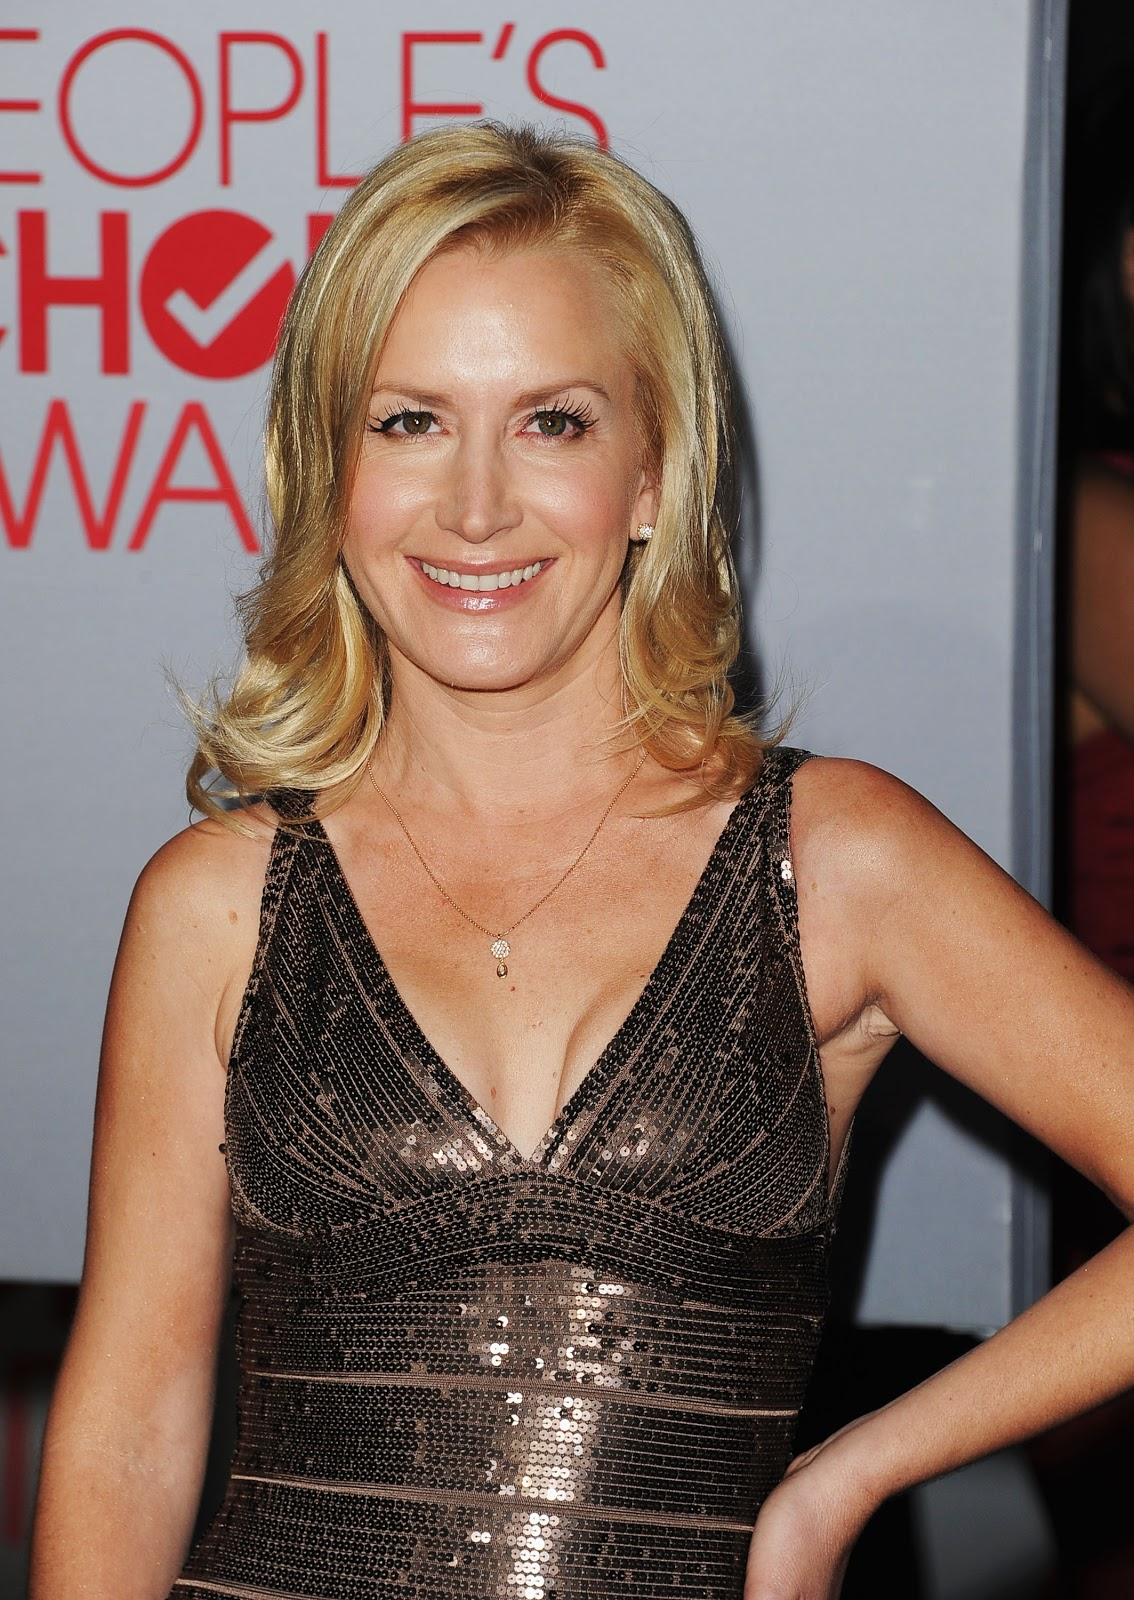 Cleavage Angela Kinsey nude (62 images), Paparazzi